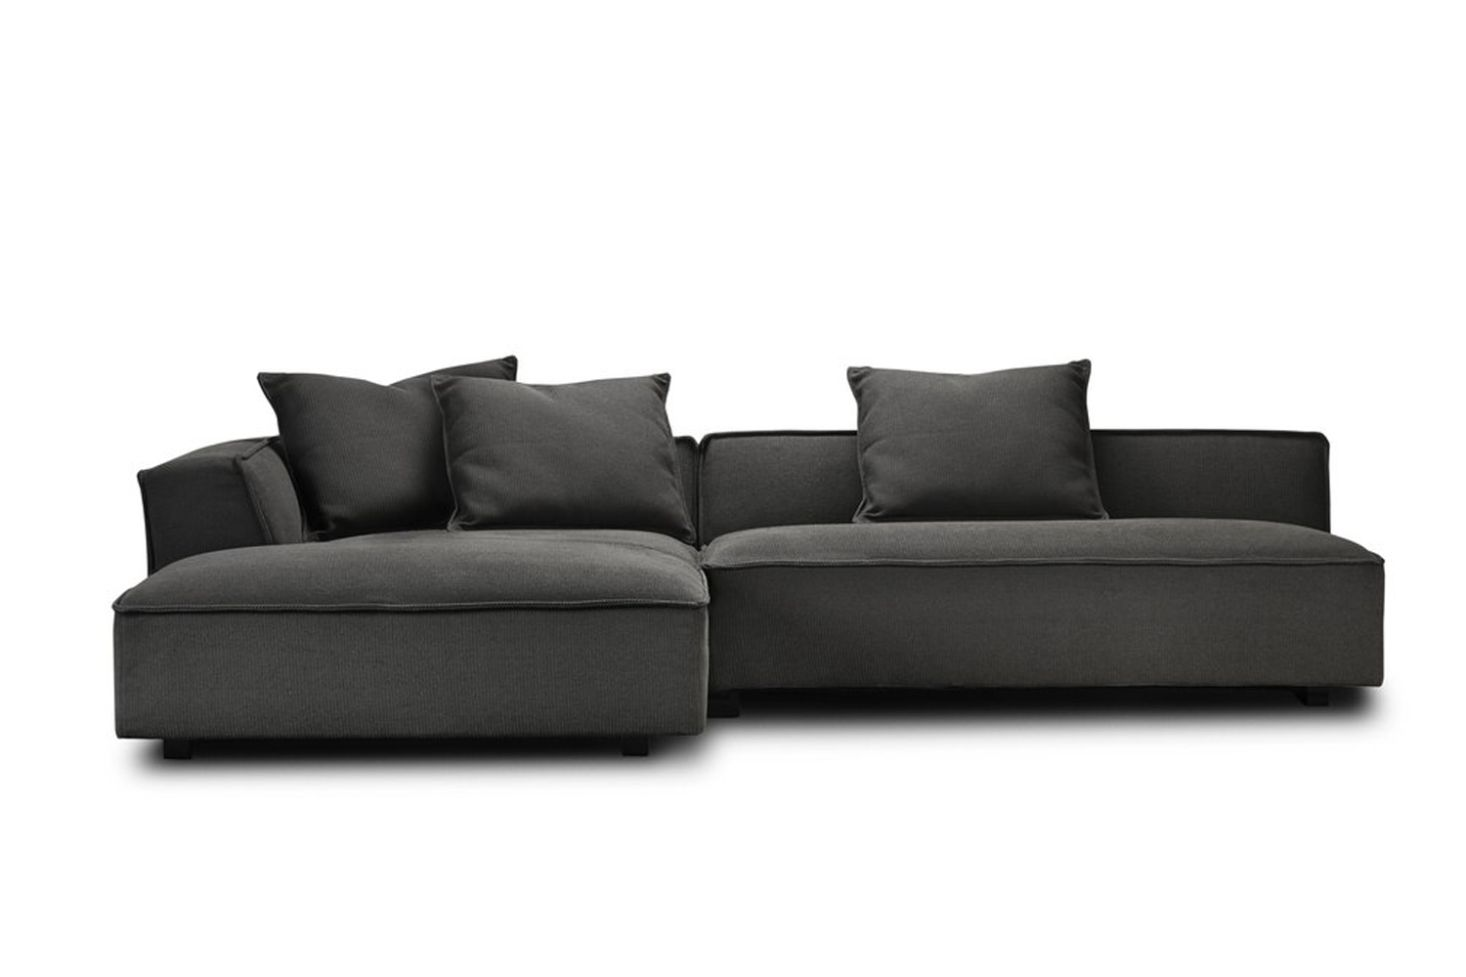 10 Easy Pieces Modular Building Block Sectional Sofas Remodelista Sectional Sofa Sectional Sofa Sale Sectional